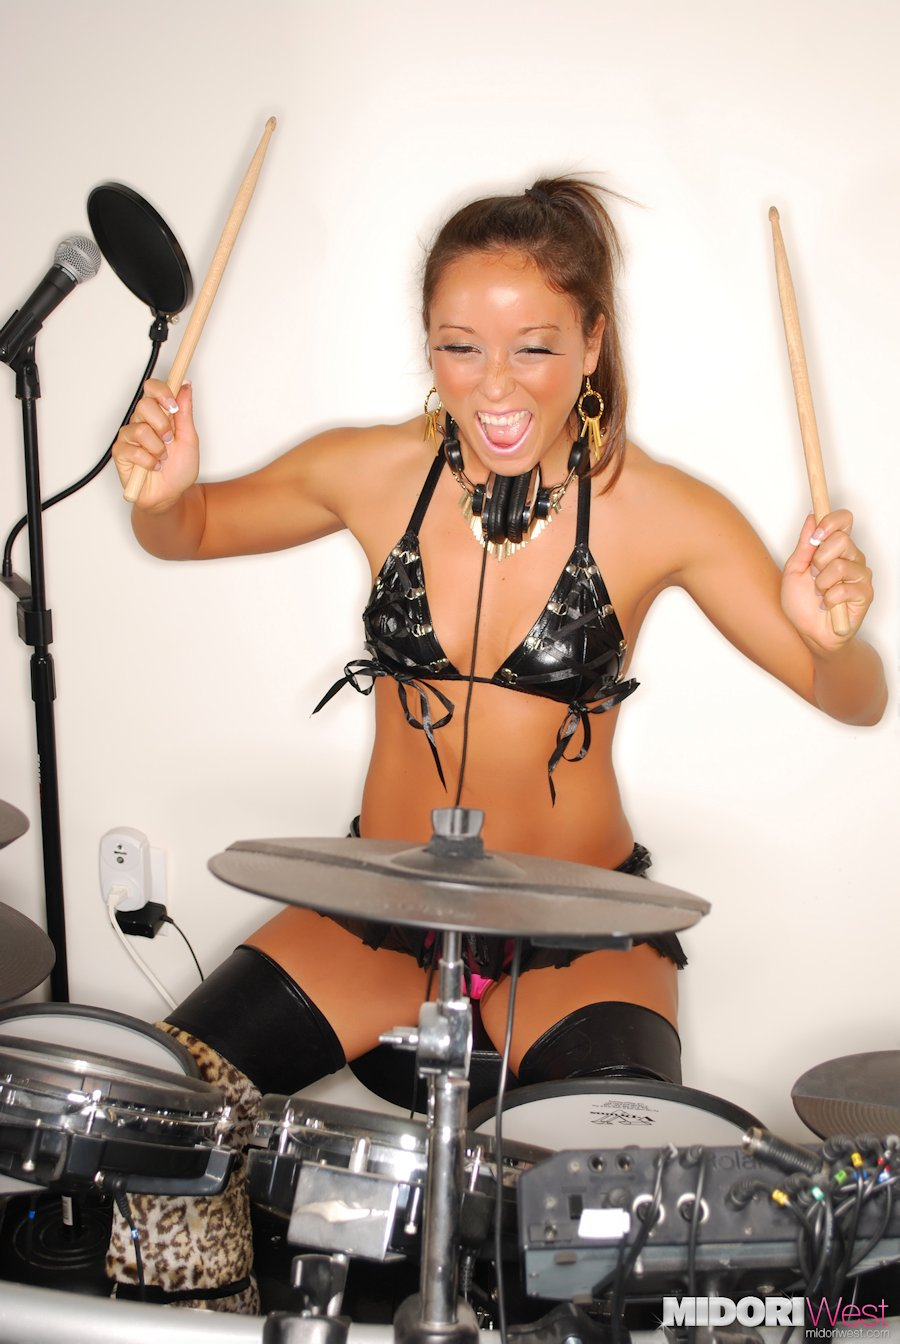 Saunasex Playing Drums Girl Nude